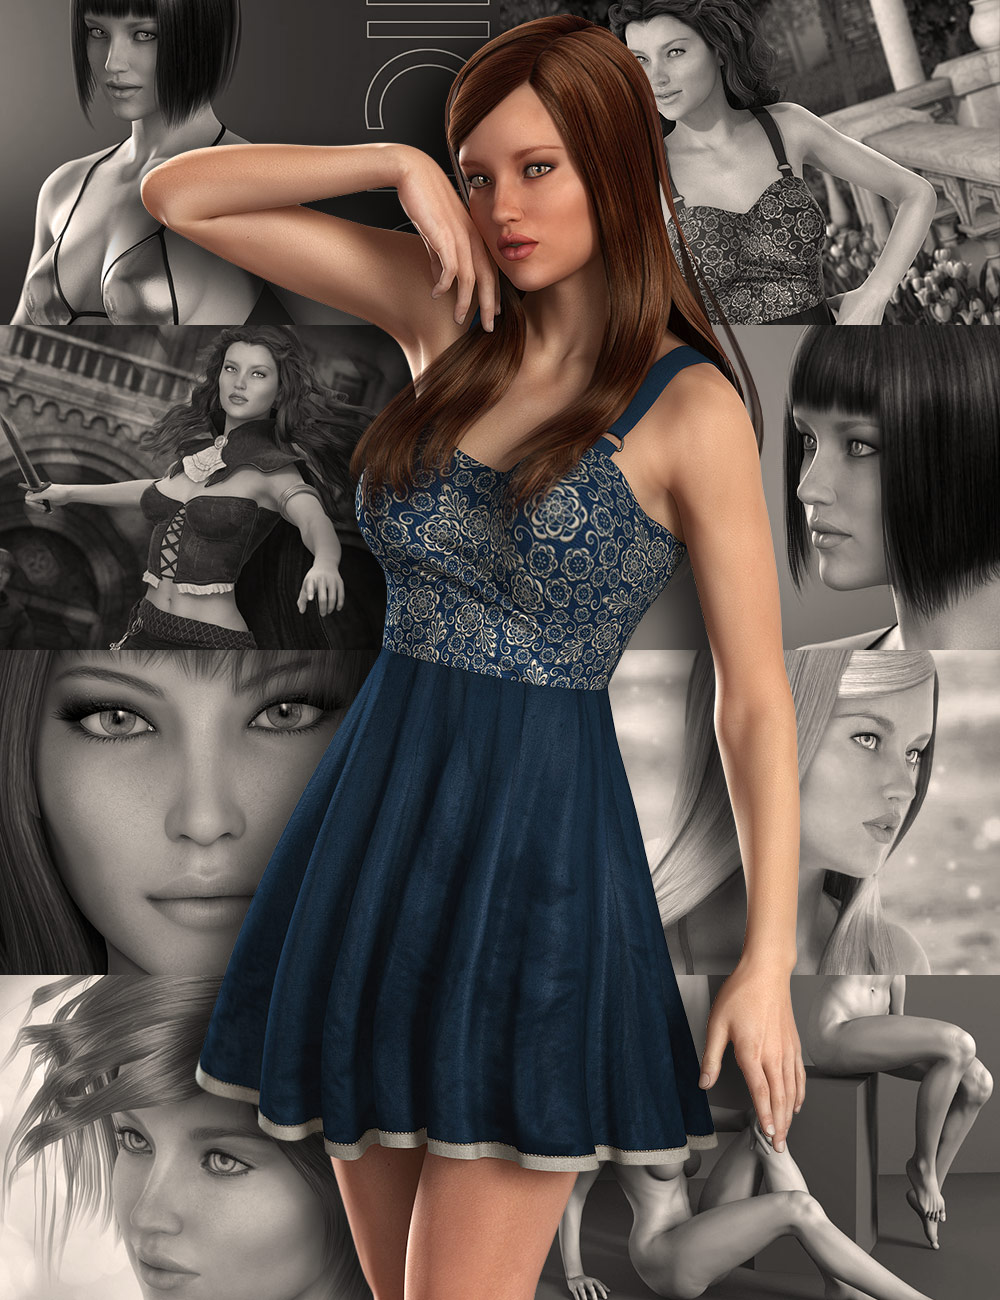 Victoria 6 Starter Bundle by: , 3D Models by Daz 3D